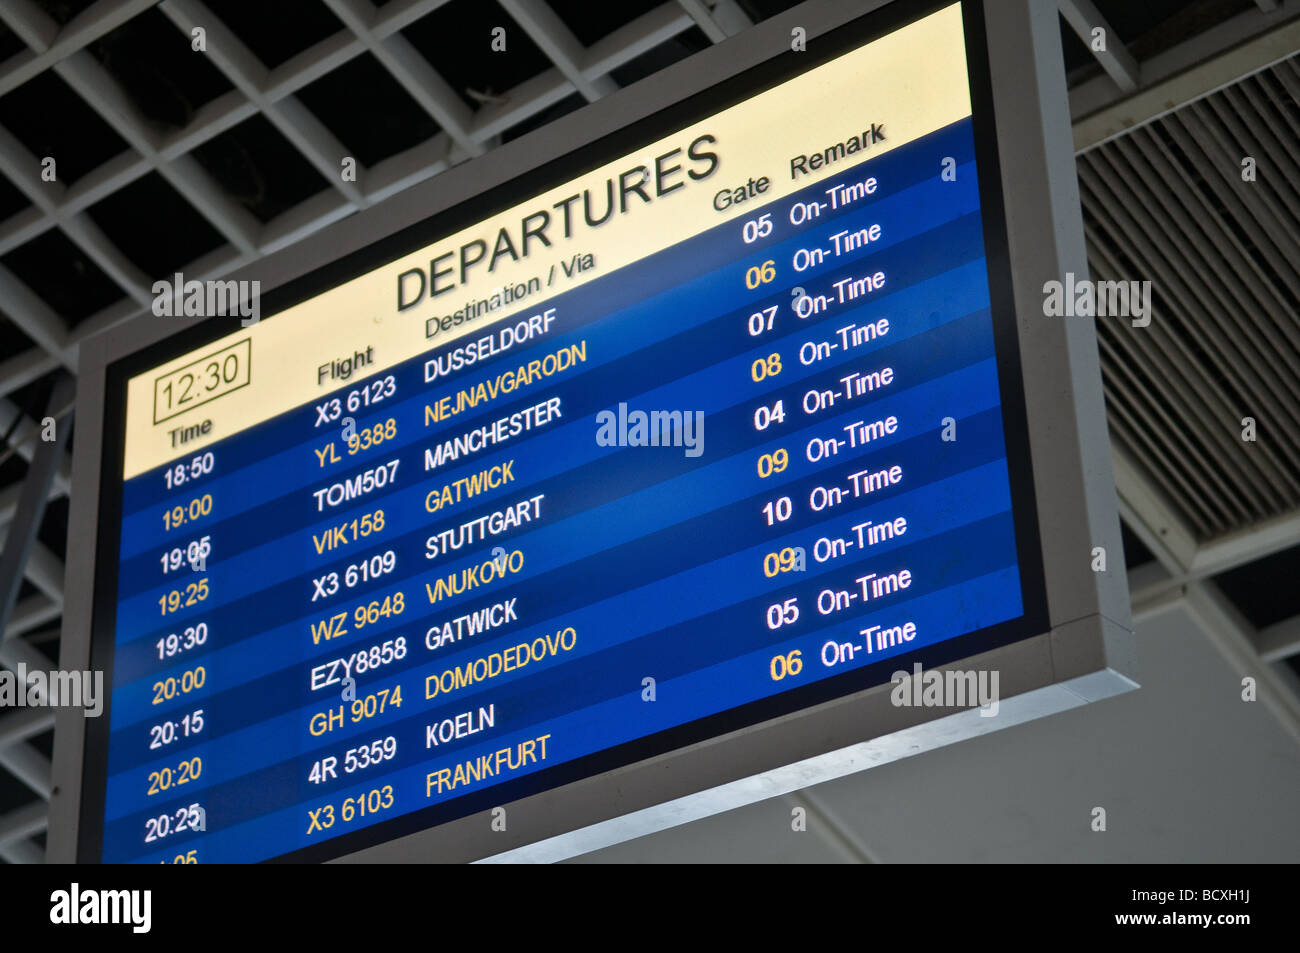 Flight departure information board at airport - Stock Image